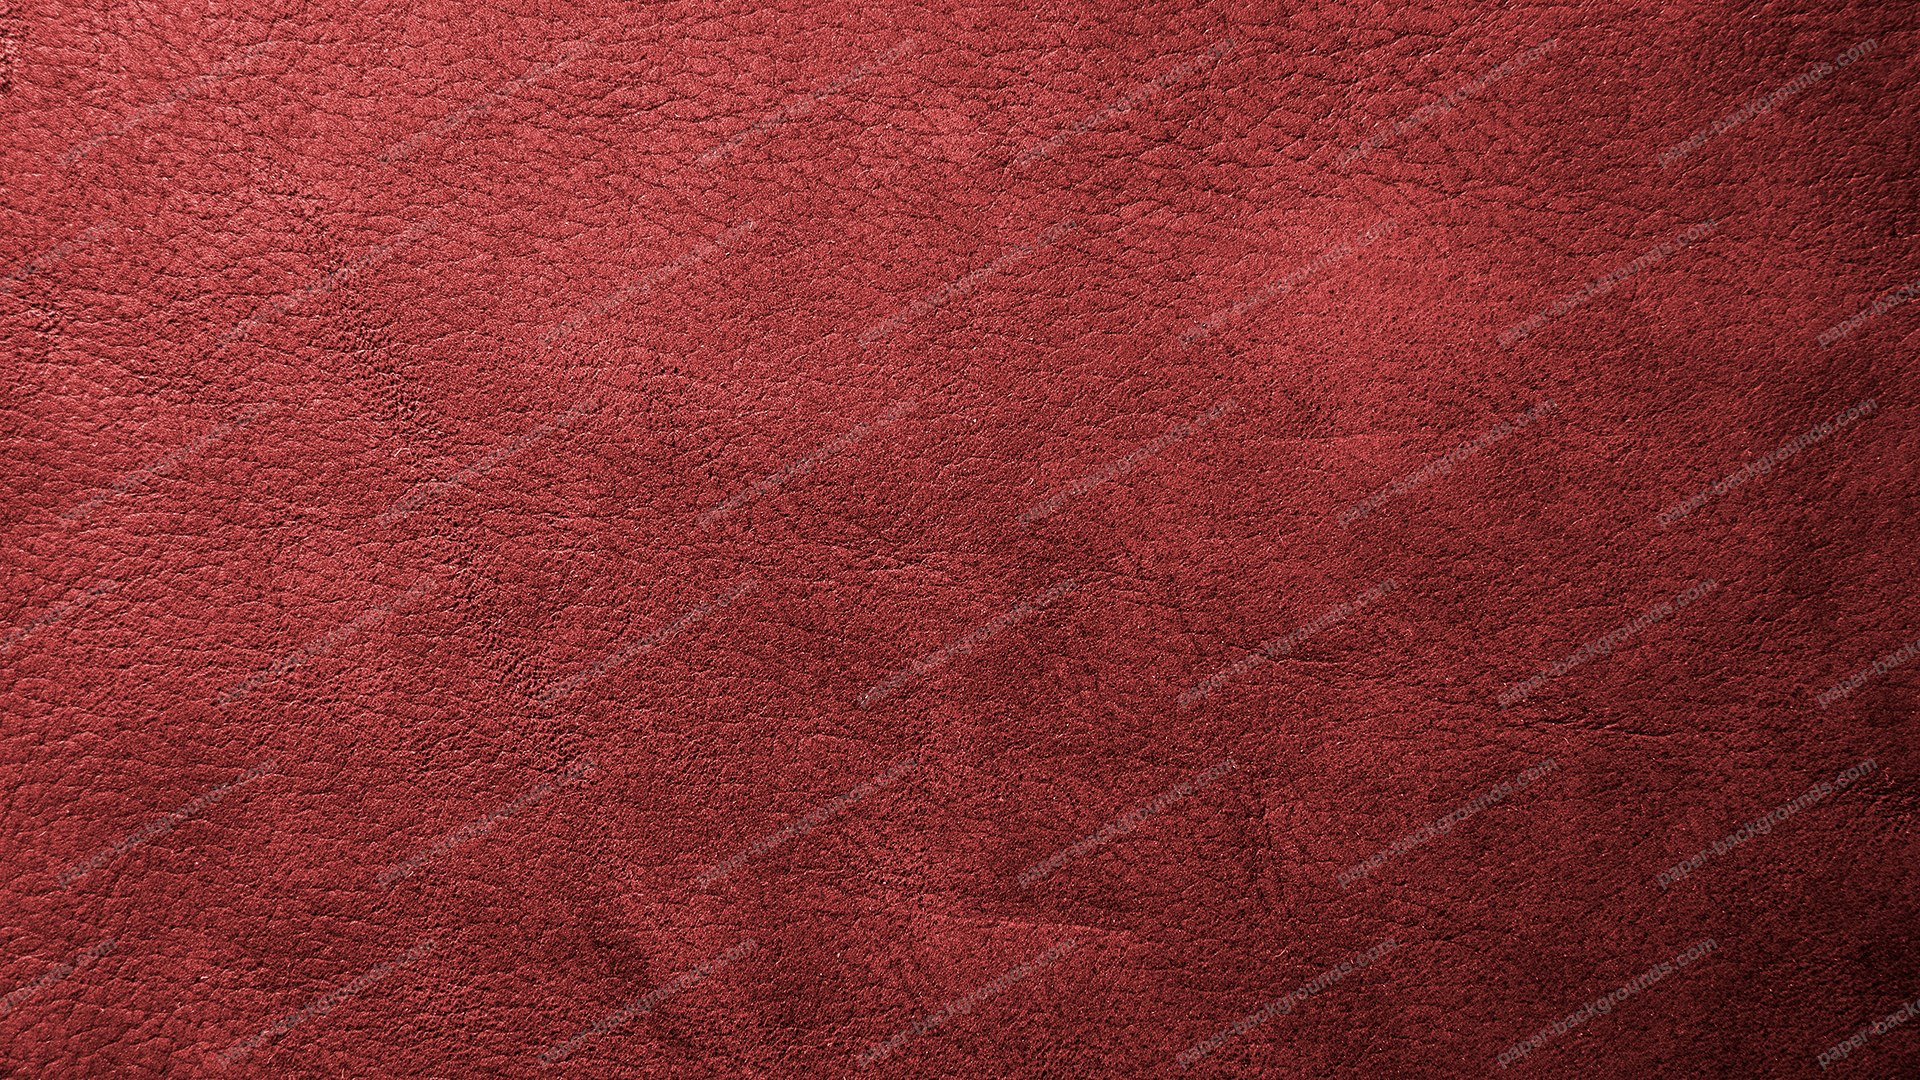 red textured background hd - photo #22